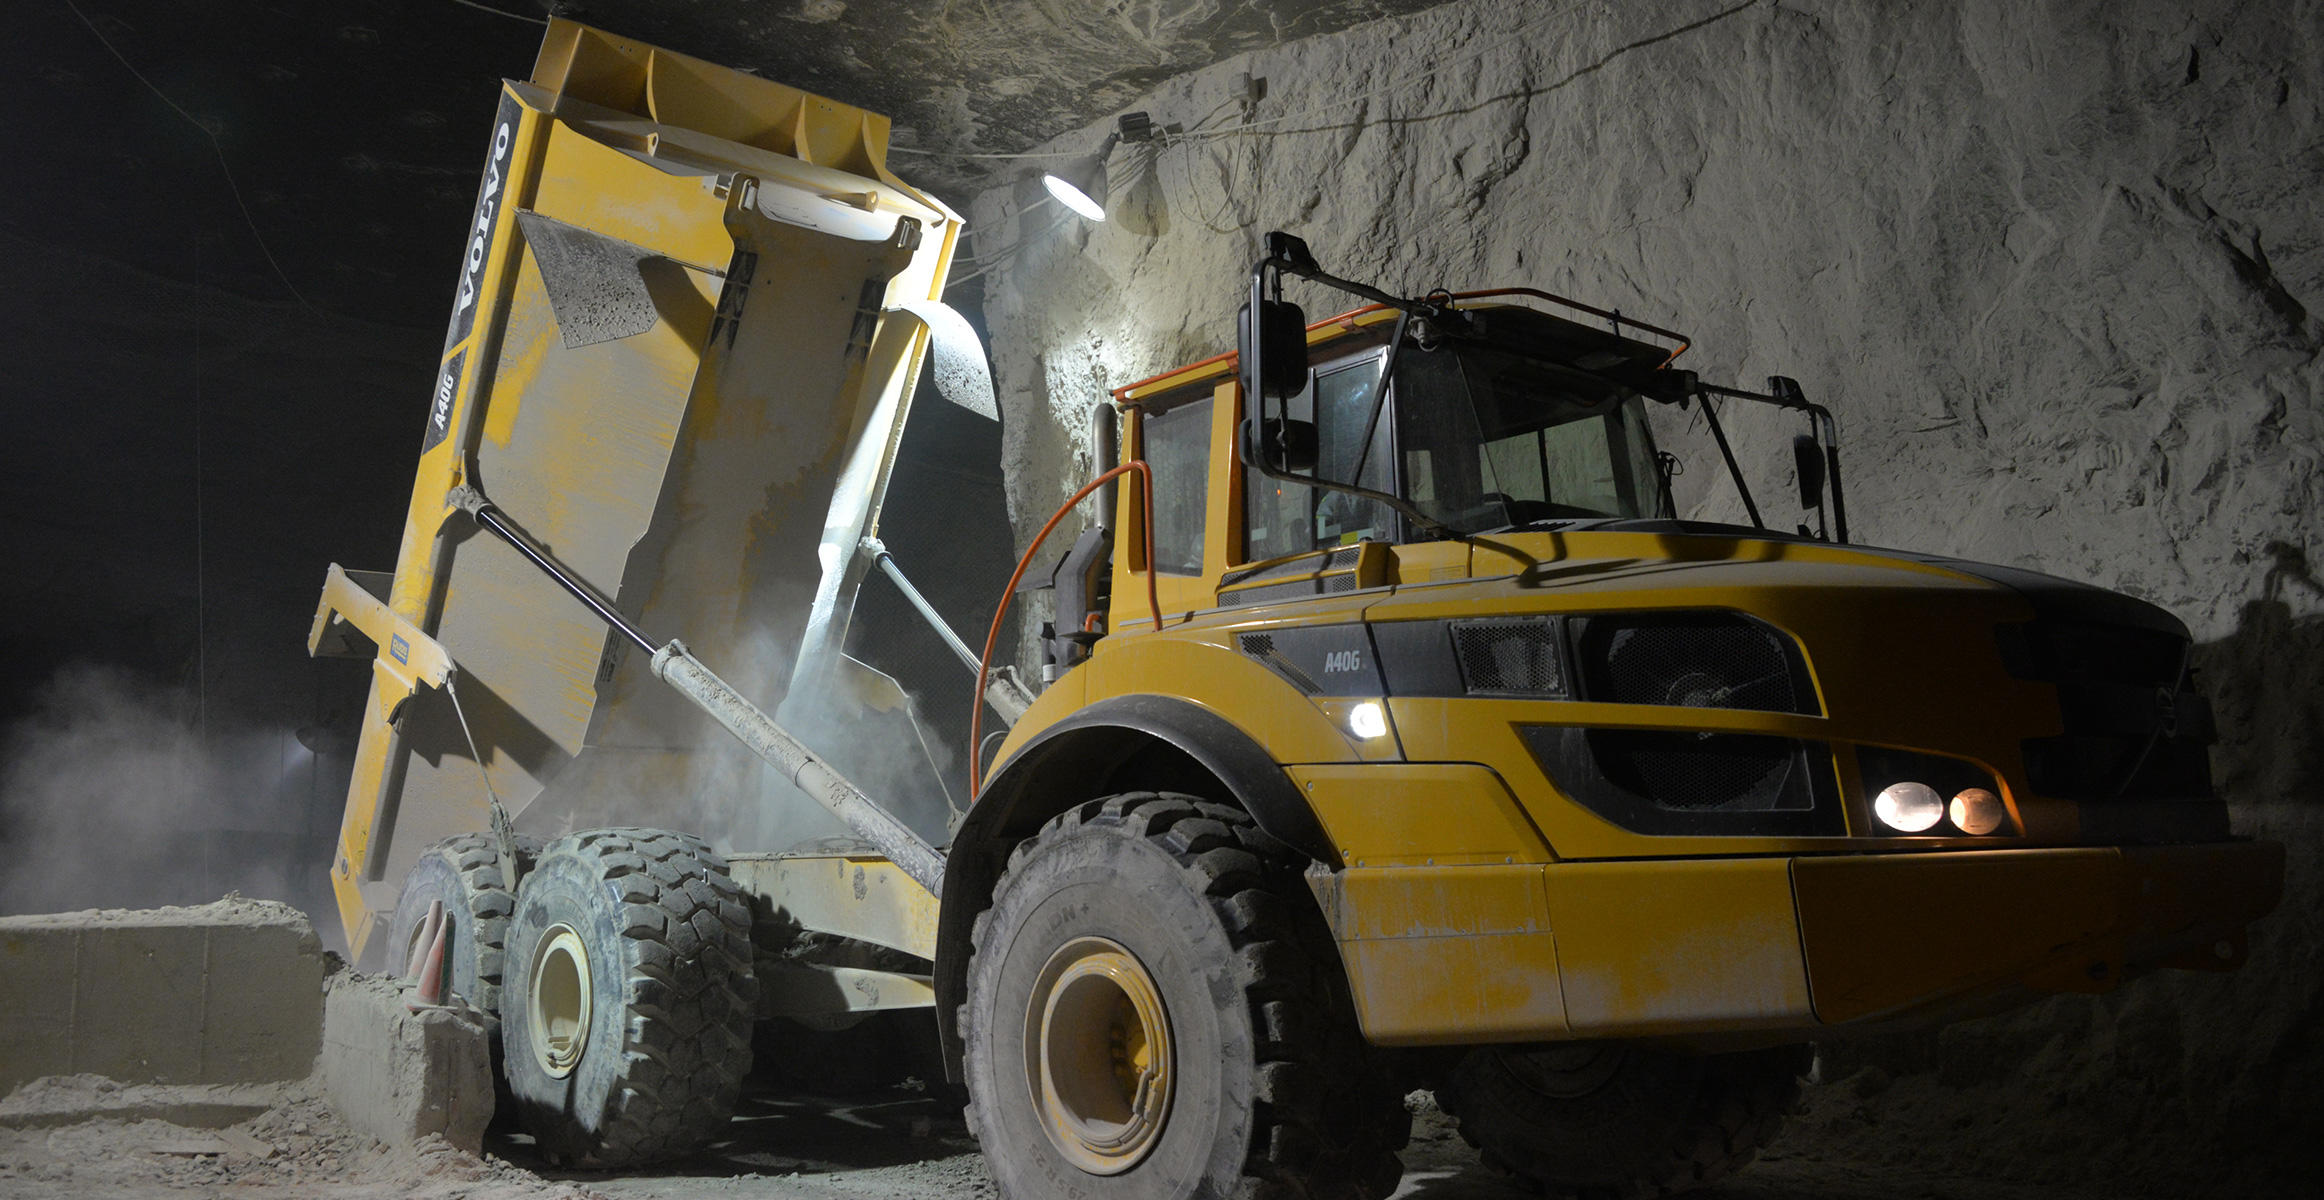 Volvo Articulated Truck (ADT) in underground Sterling mine